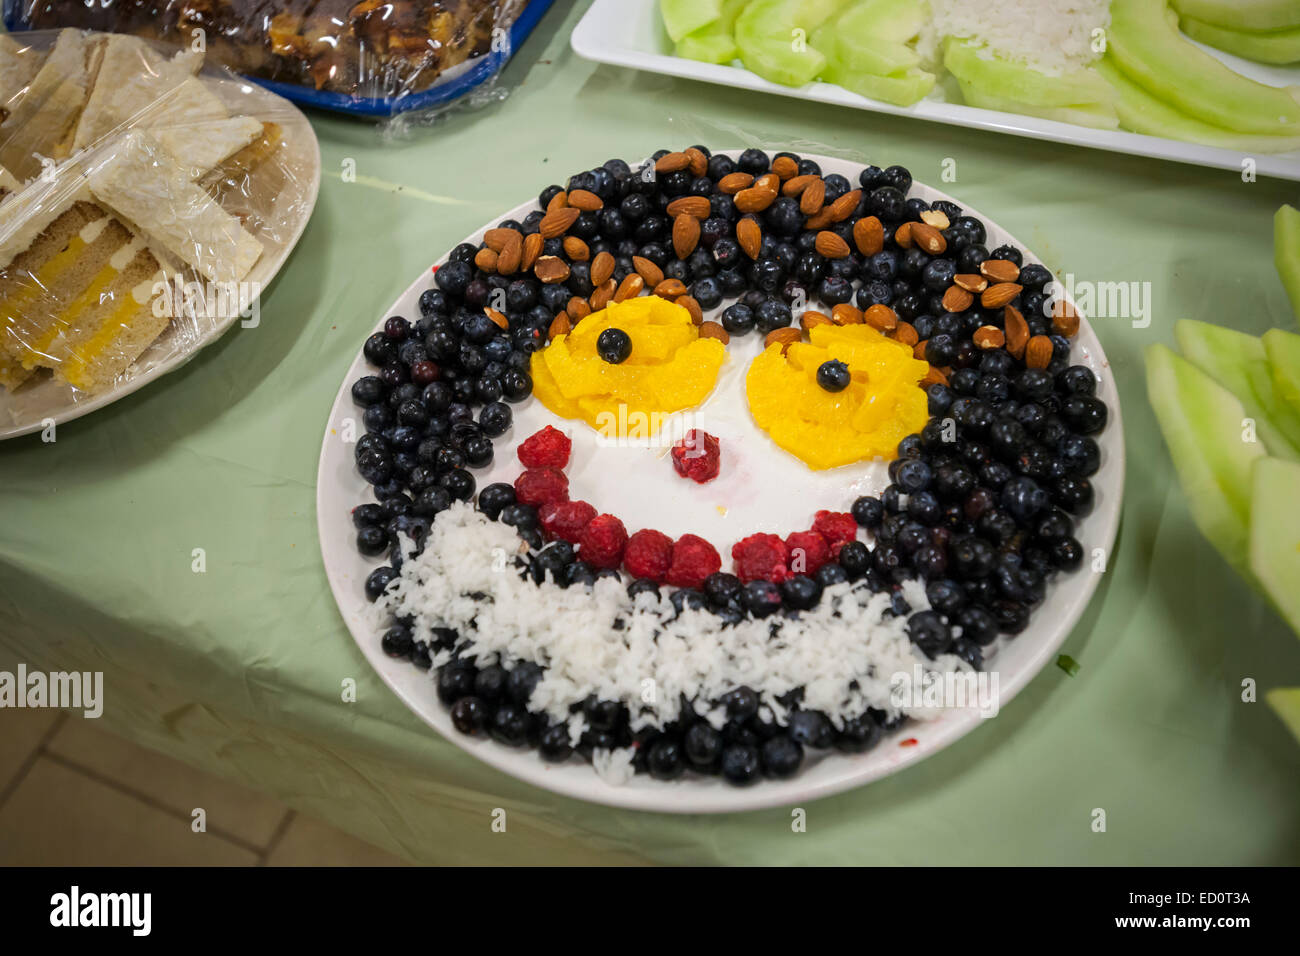 Fruit And Nut Dessert In The Shape Of A Smiley Face In The Upper